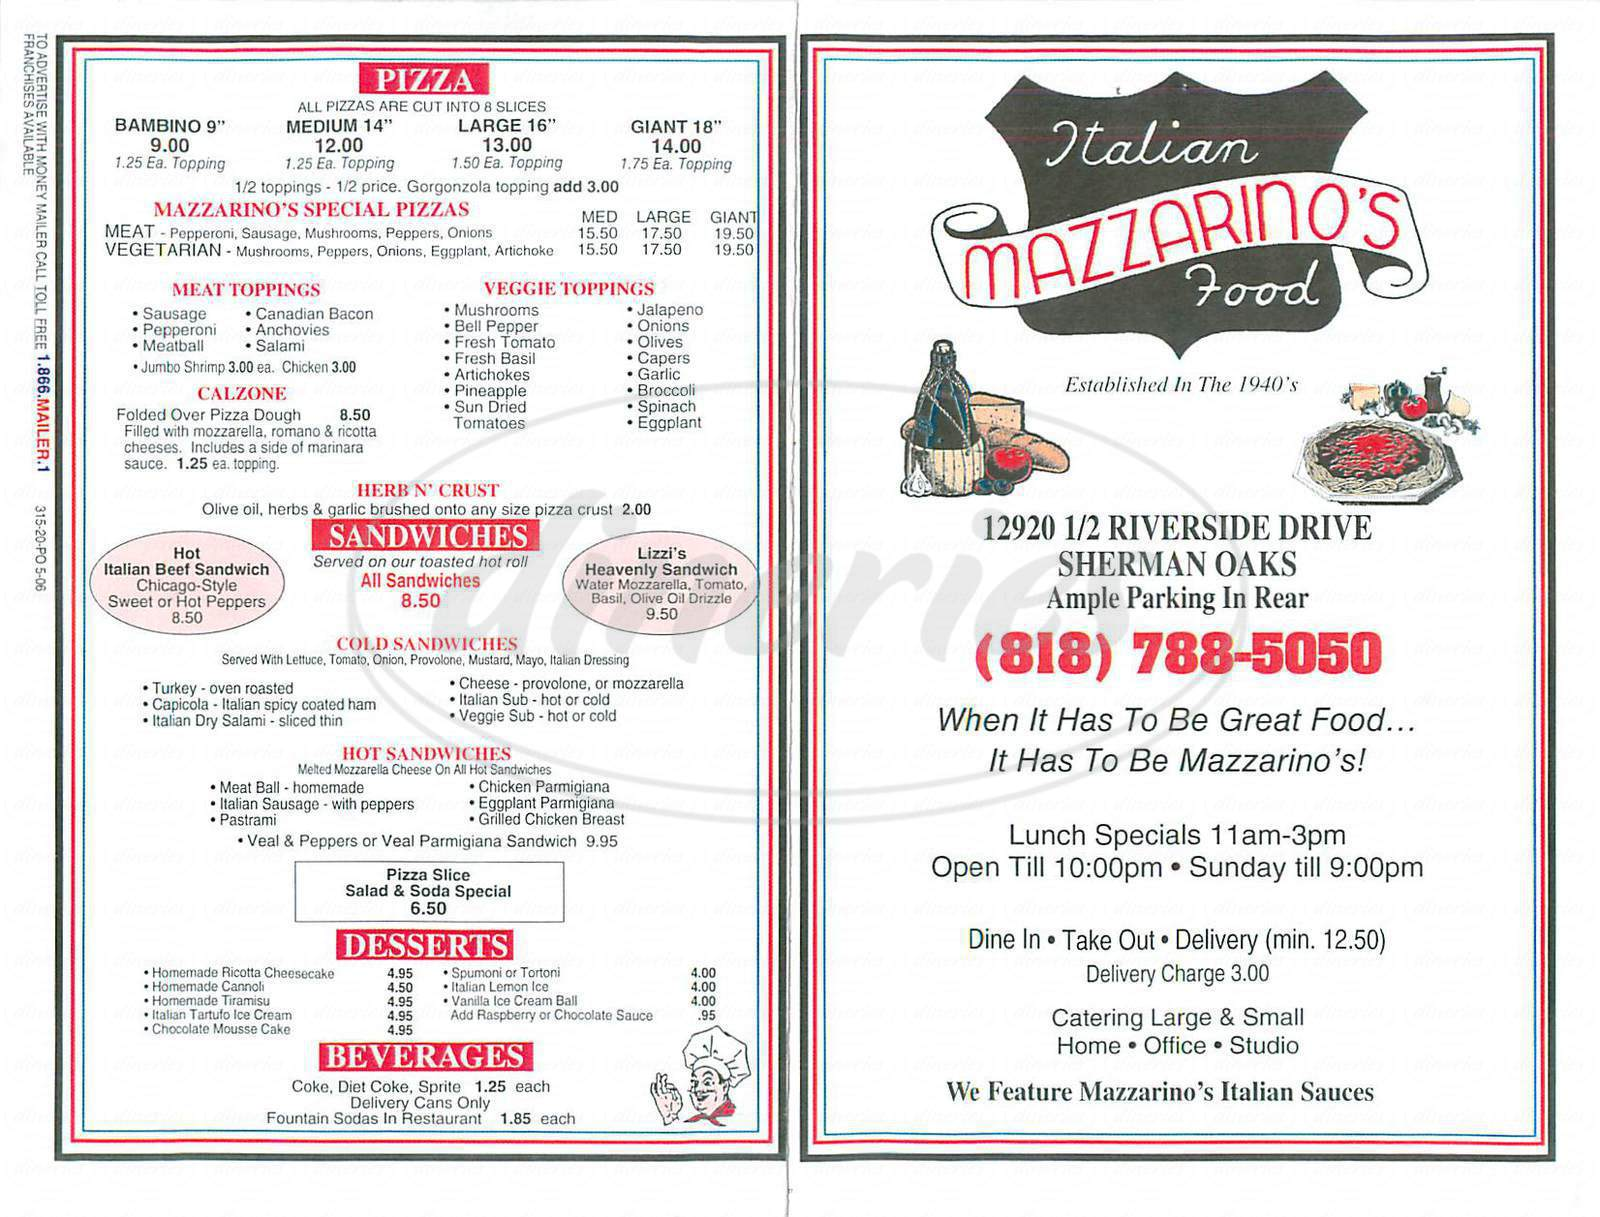 menu for Mazzarino's Italian Food